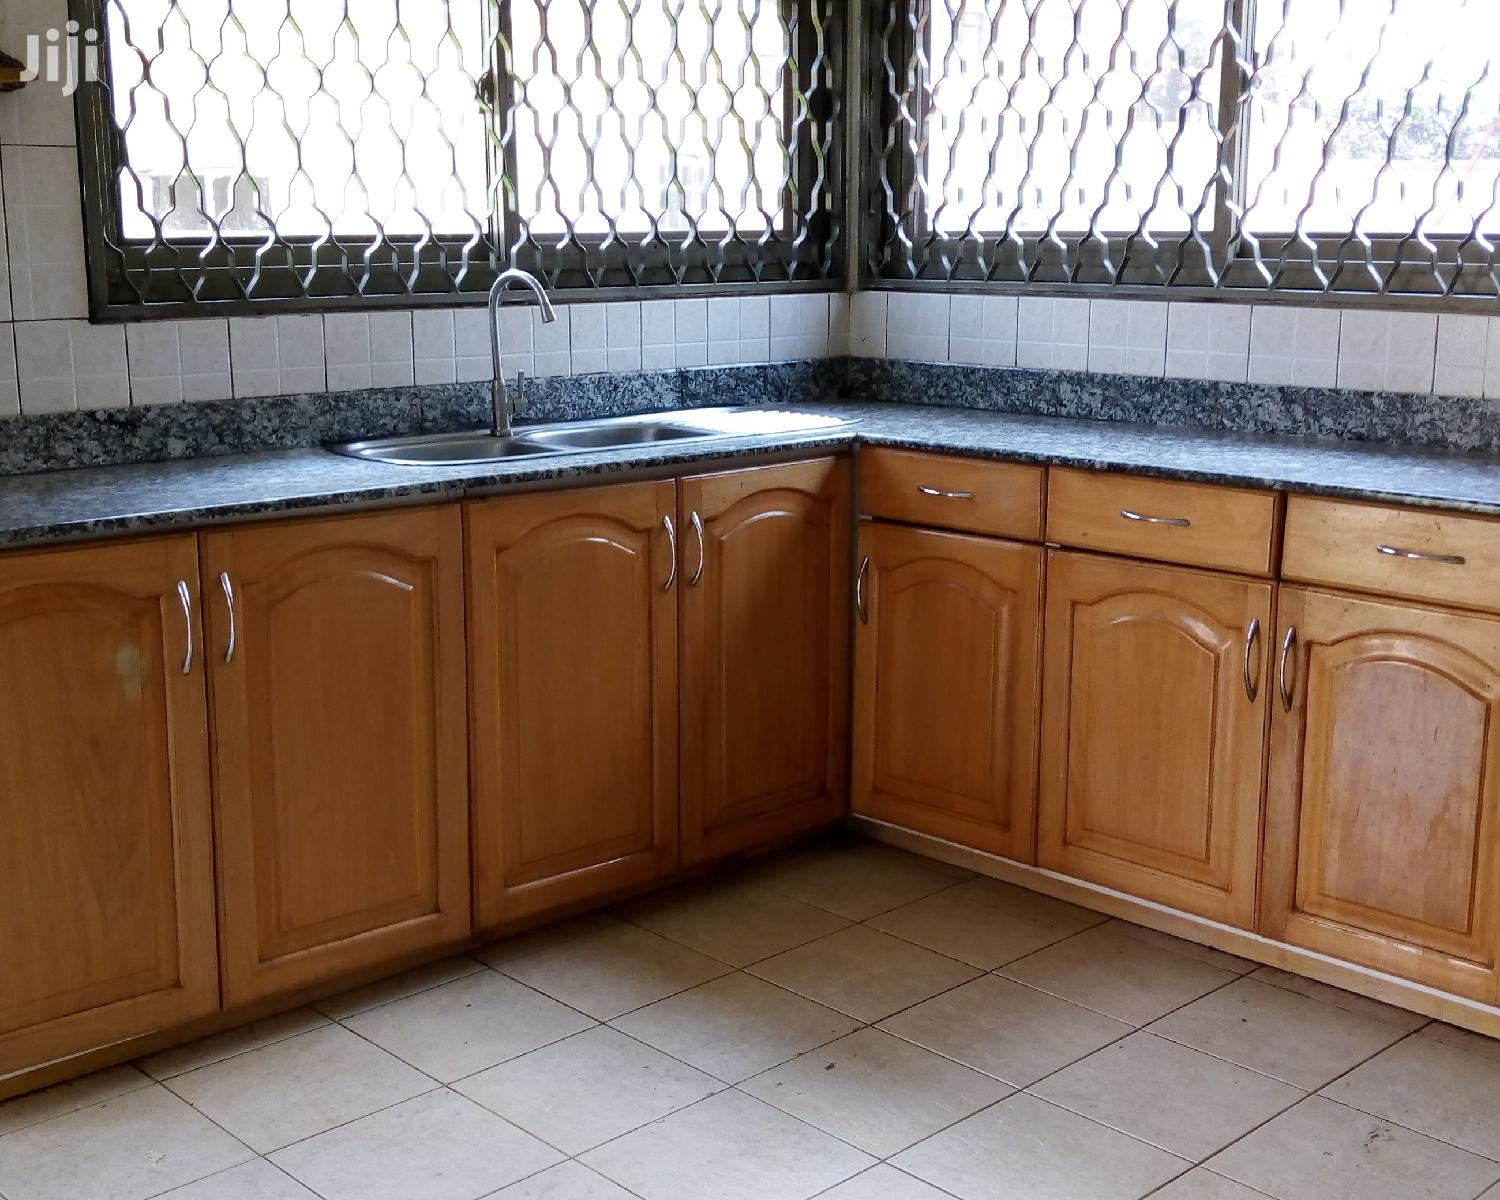 Ntinda House Is for Rent   Houses & Apartments For Rent for sale in Kampala, Central Region, Uganda